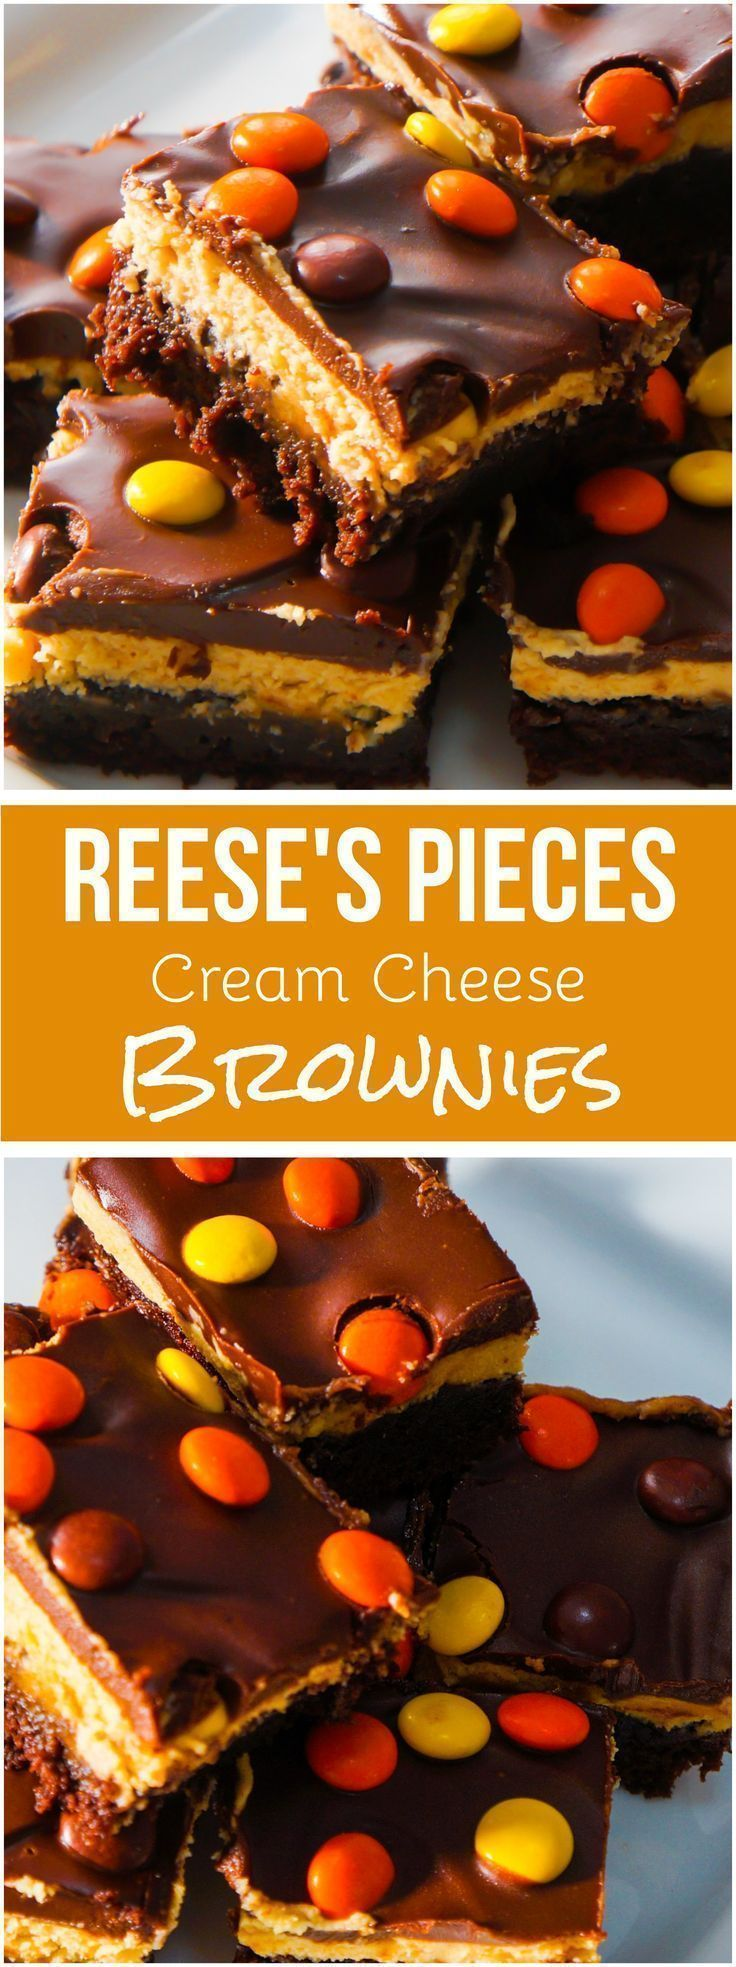 Reese's Pieces Cream Cheese Brownies. Delicious chocolate and peanut butter dessert.